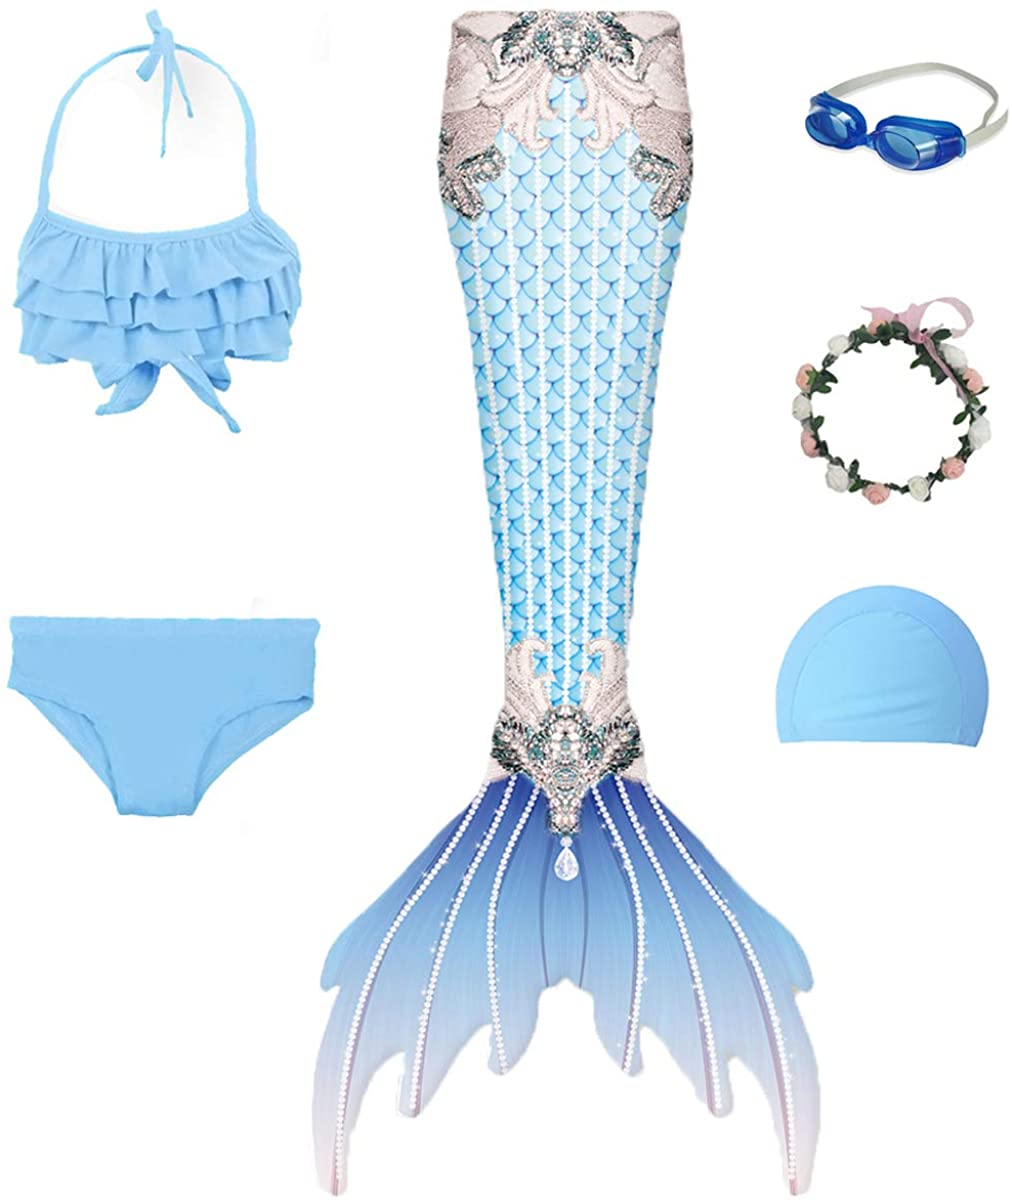 Gesikai01 6PCS Set Swimsuit Girls Mermaid Tails for Swimming Bathing Suit Swimwear Swimsuit Bikini Set Mermaid Costume